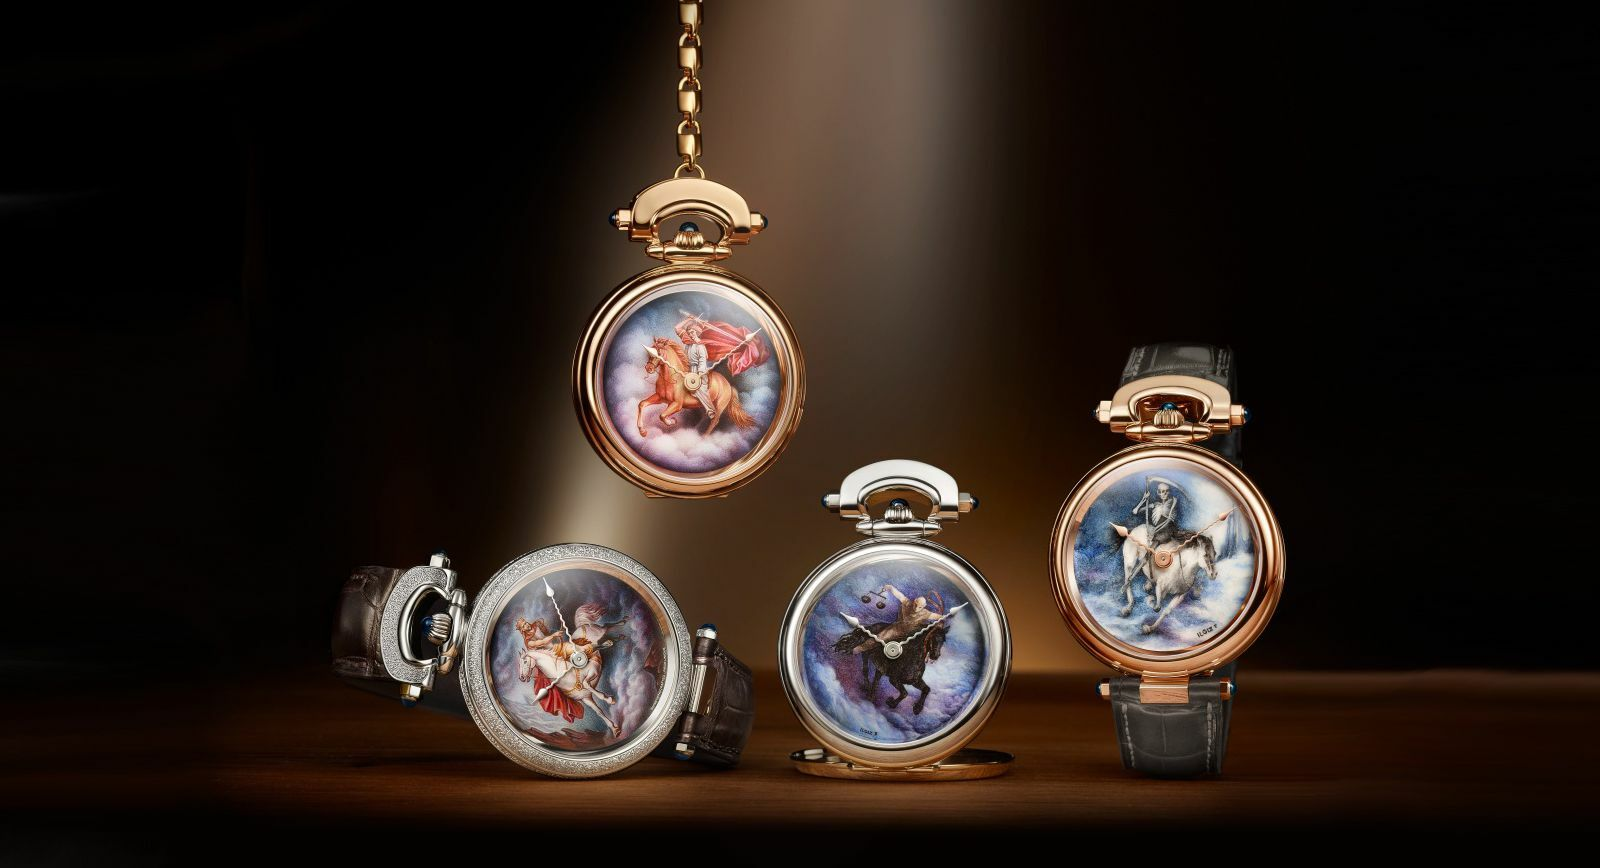 Jewellery designer Ilgiz F. and watchmakers Bovet 1822 come together to create a series of unique painted enamel watches